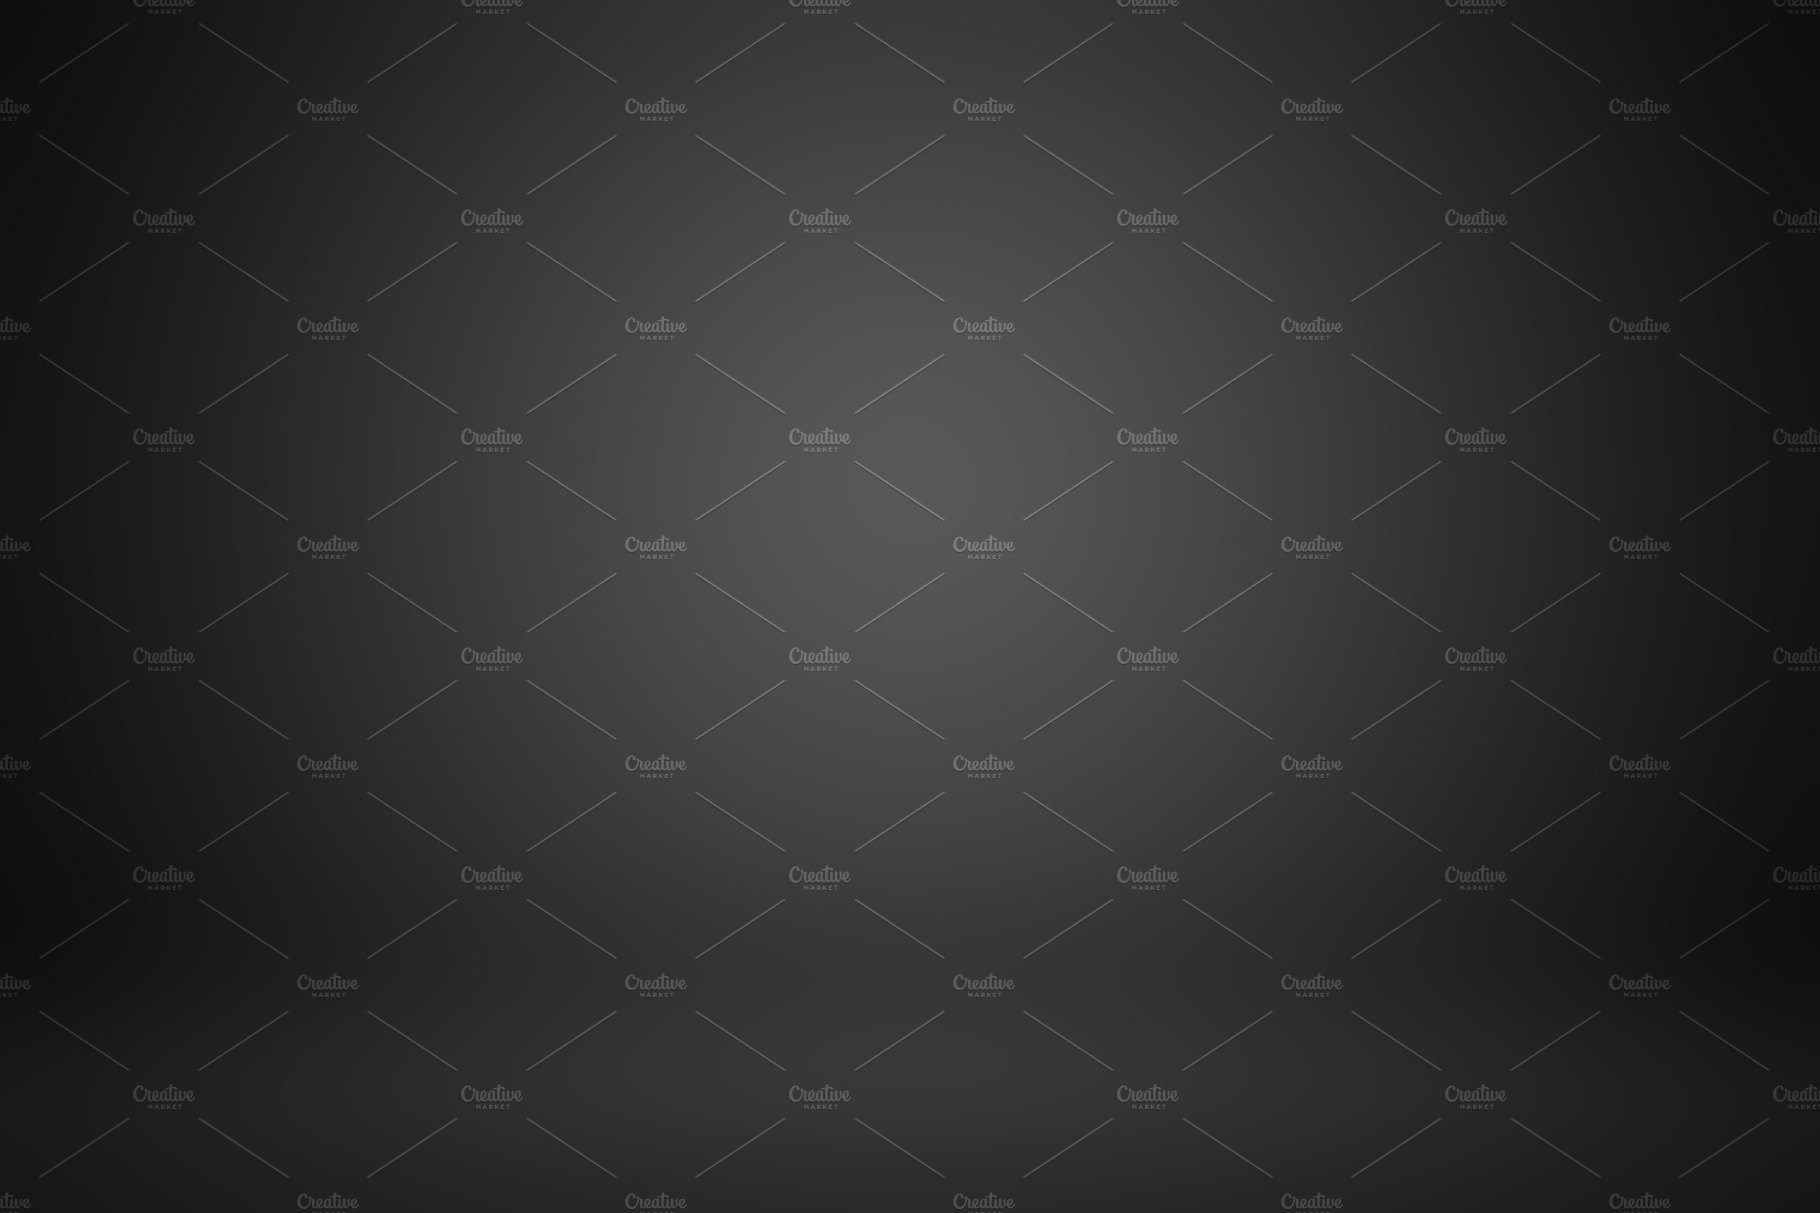 Abstract Luxury Black Gradient With Border Vignette Background Studio Backdrop